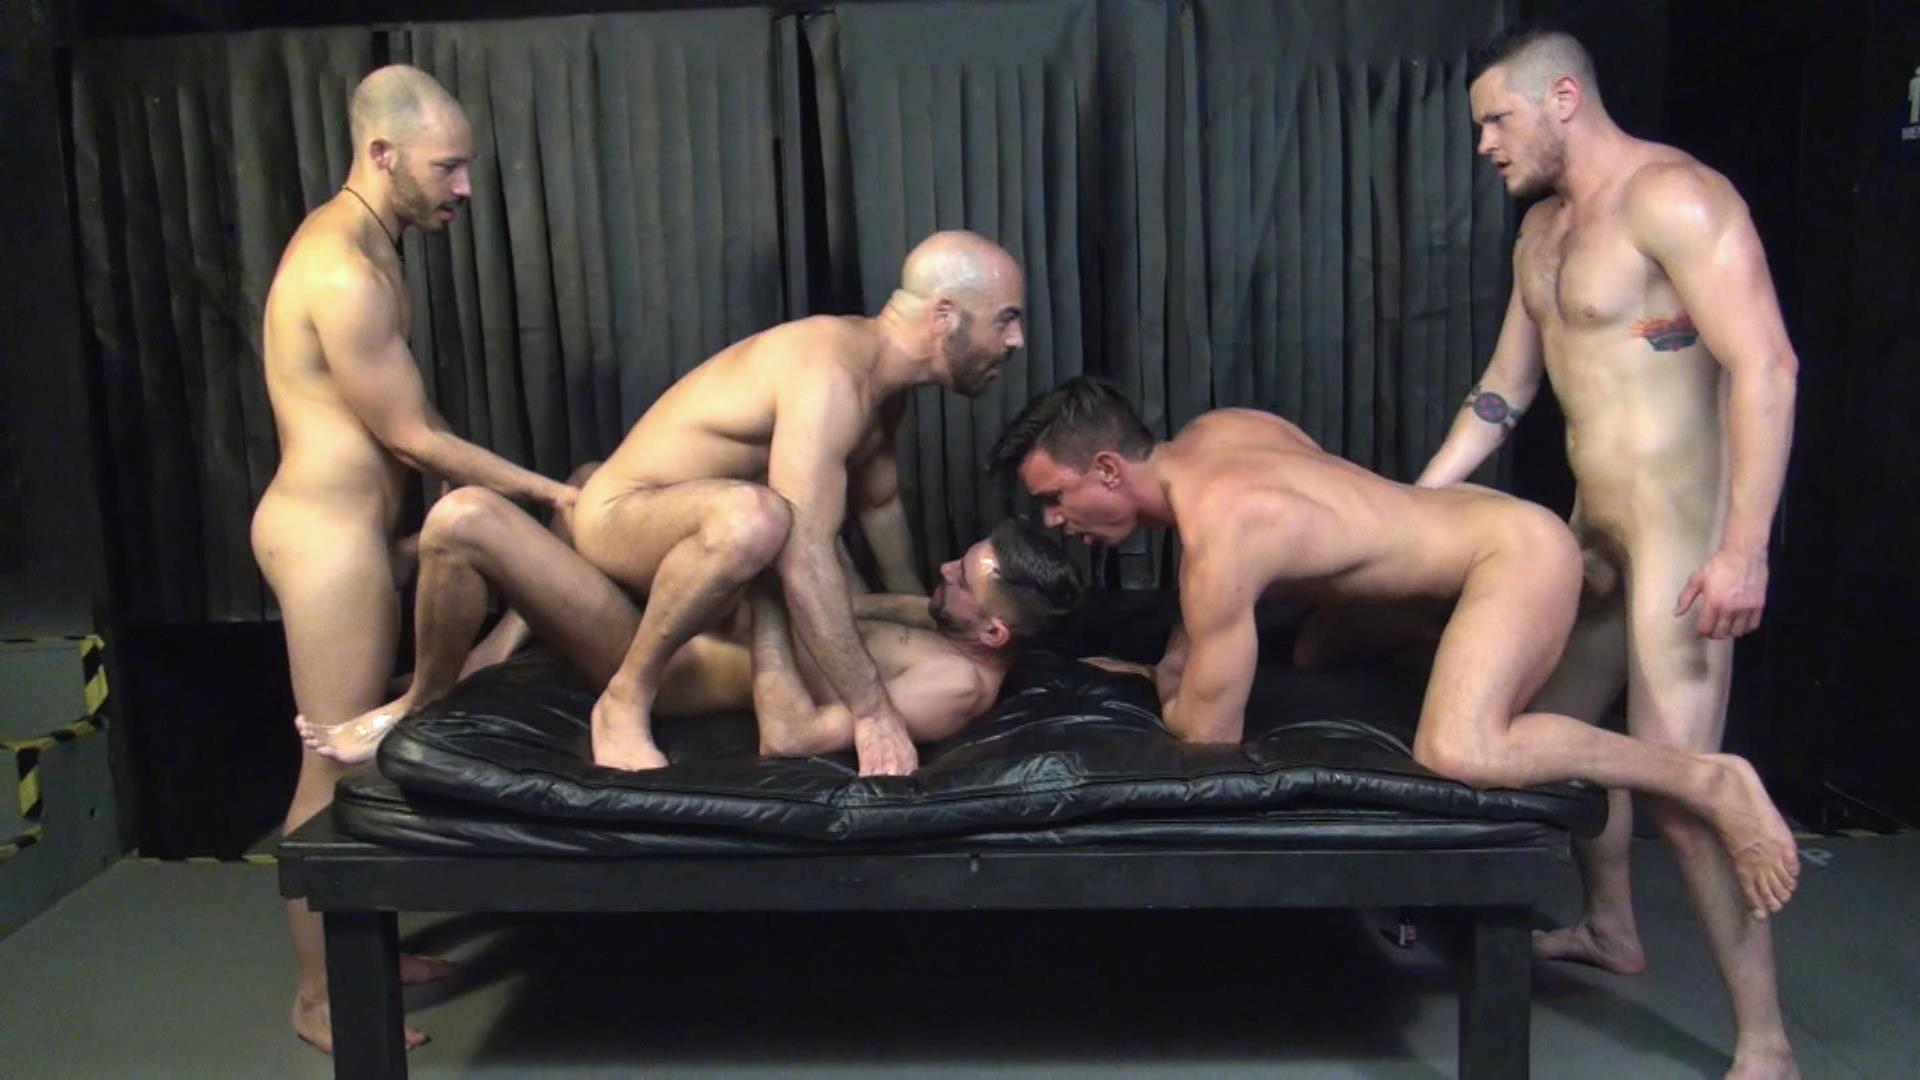 Raw-Fuck-Club-Blue-Bailey-and-Dylan-Strokes-and-Adam-Russo-and-Dean-Brody-and-Jay-Brix-Bareback-Orgy-Amateur-Gay-Porn-2 Adam Russo Getting Double Penetrated At A Bareback Sex Party